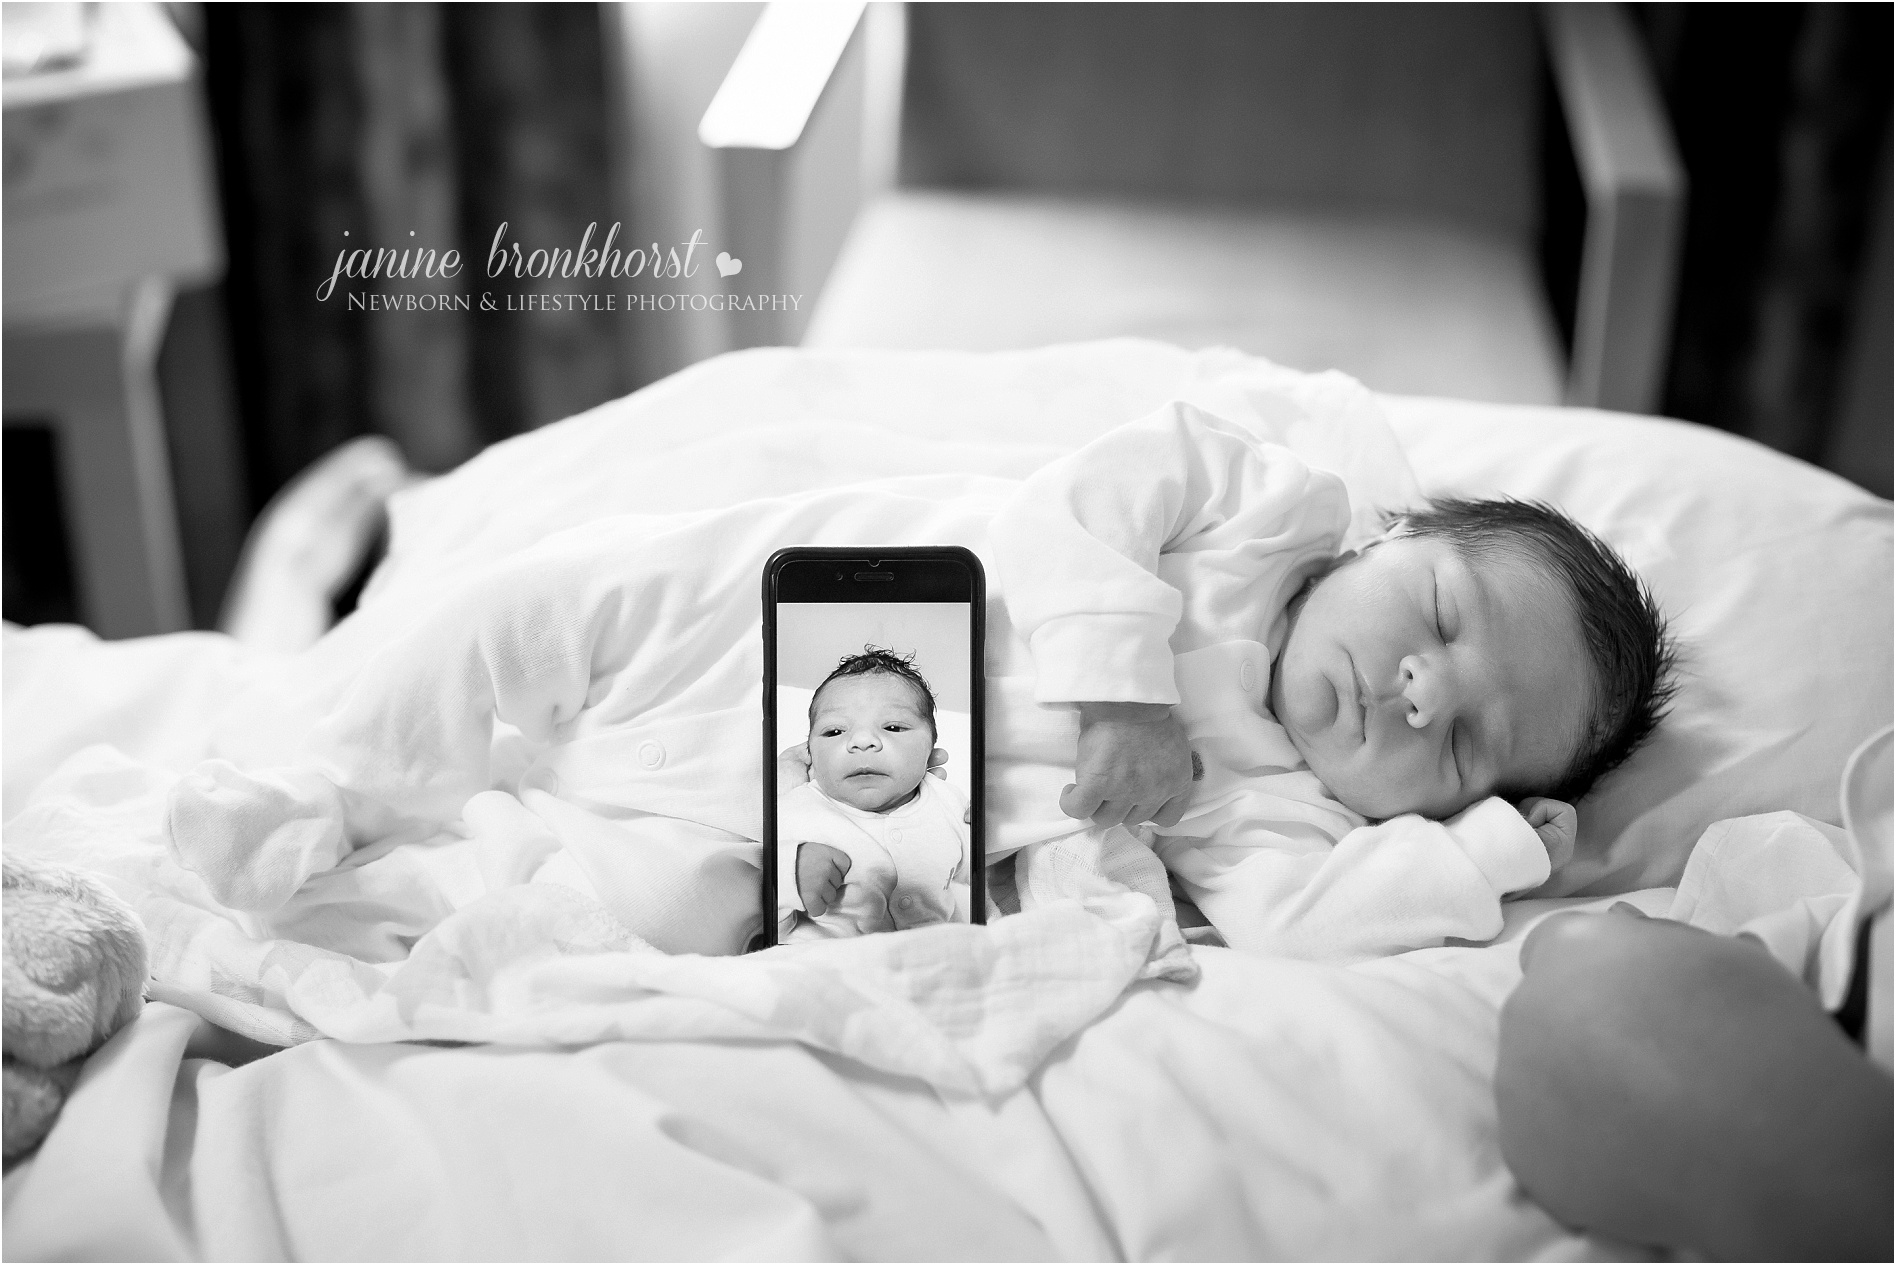 cape_town_newborn_photography_4636